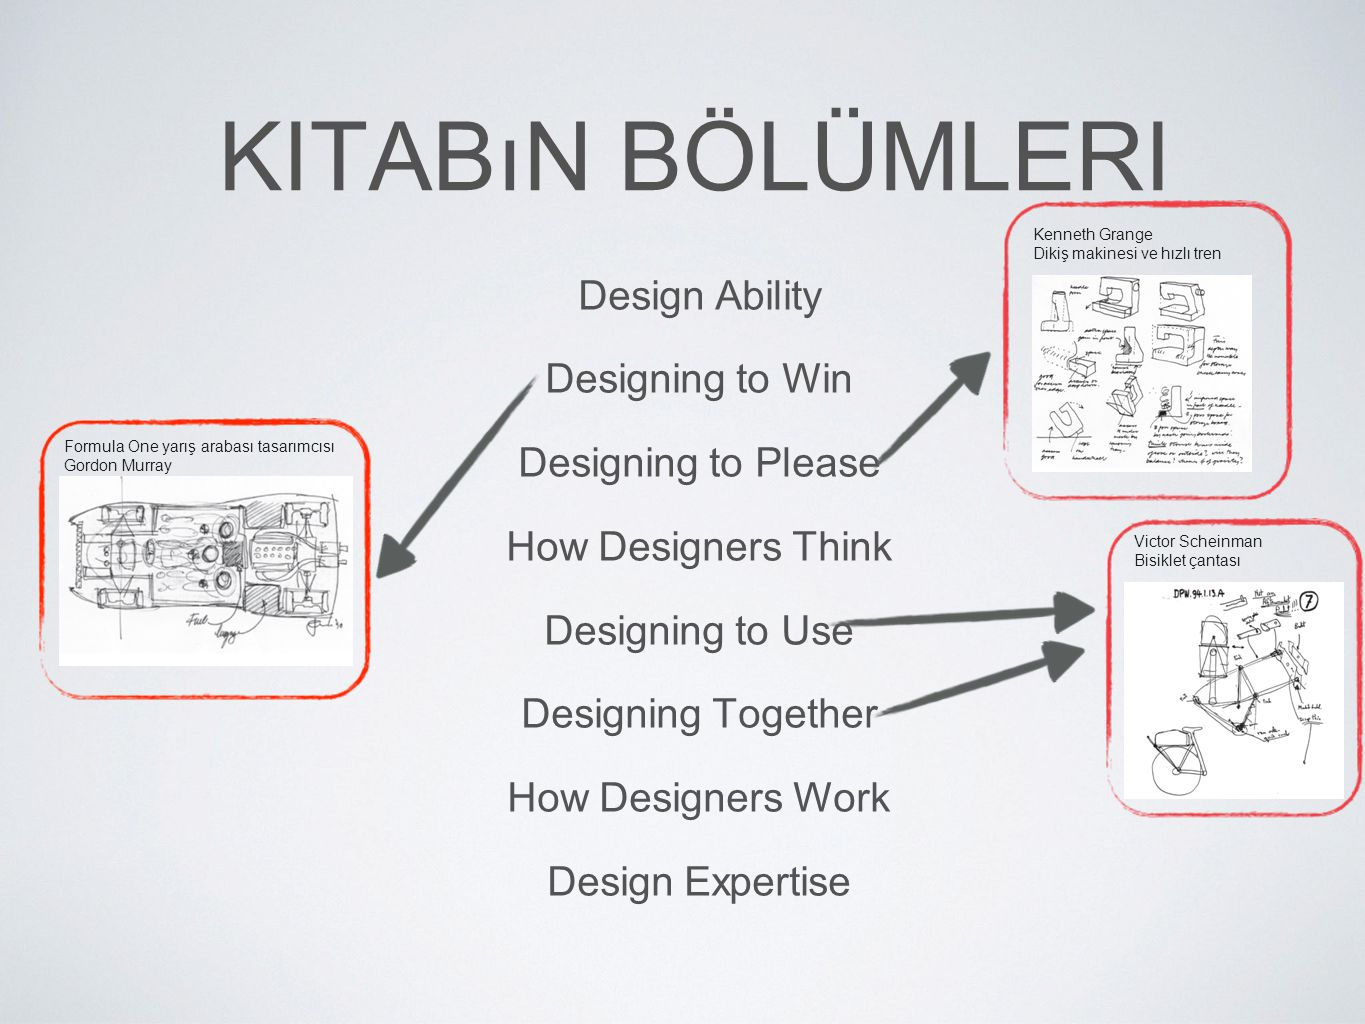 Kitabın Bölümleri Design Ability Designing to Win Designing to Please